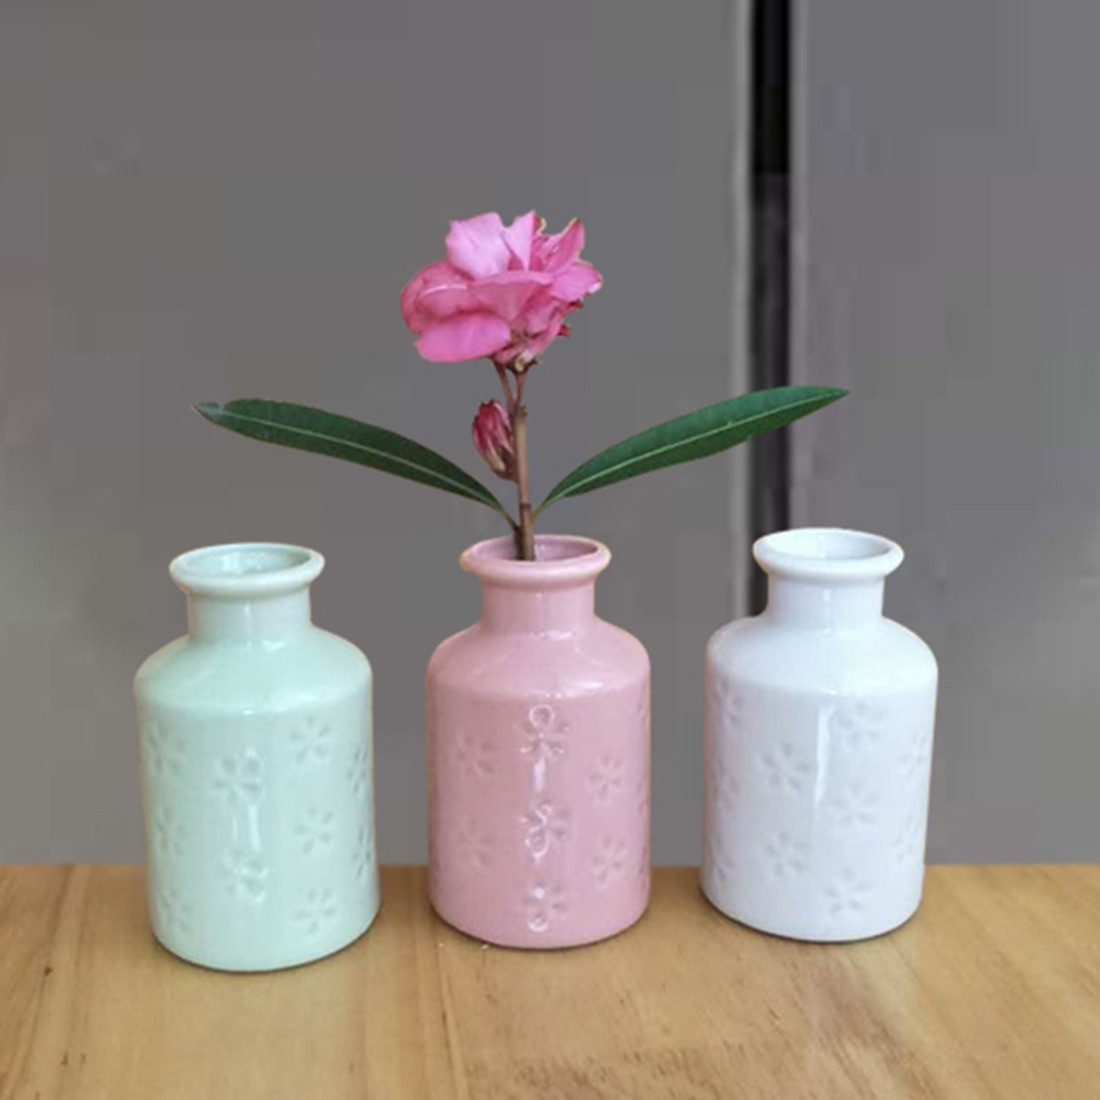 porcelain vases for sale of aliexpress com buy classic white ceramic vase chinese style home within aliexpress com buy classic white ceramic vase chinese style home decor contracted porcelain flower vases creative gift household wedding decoration from